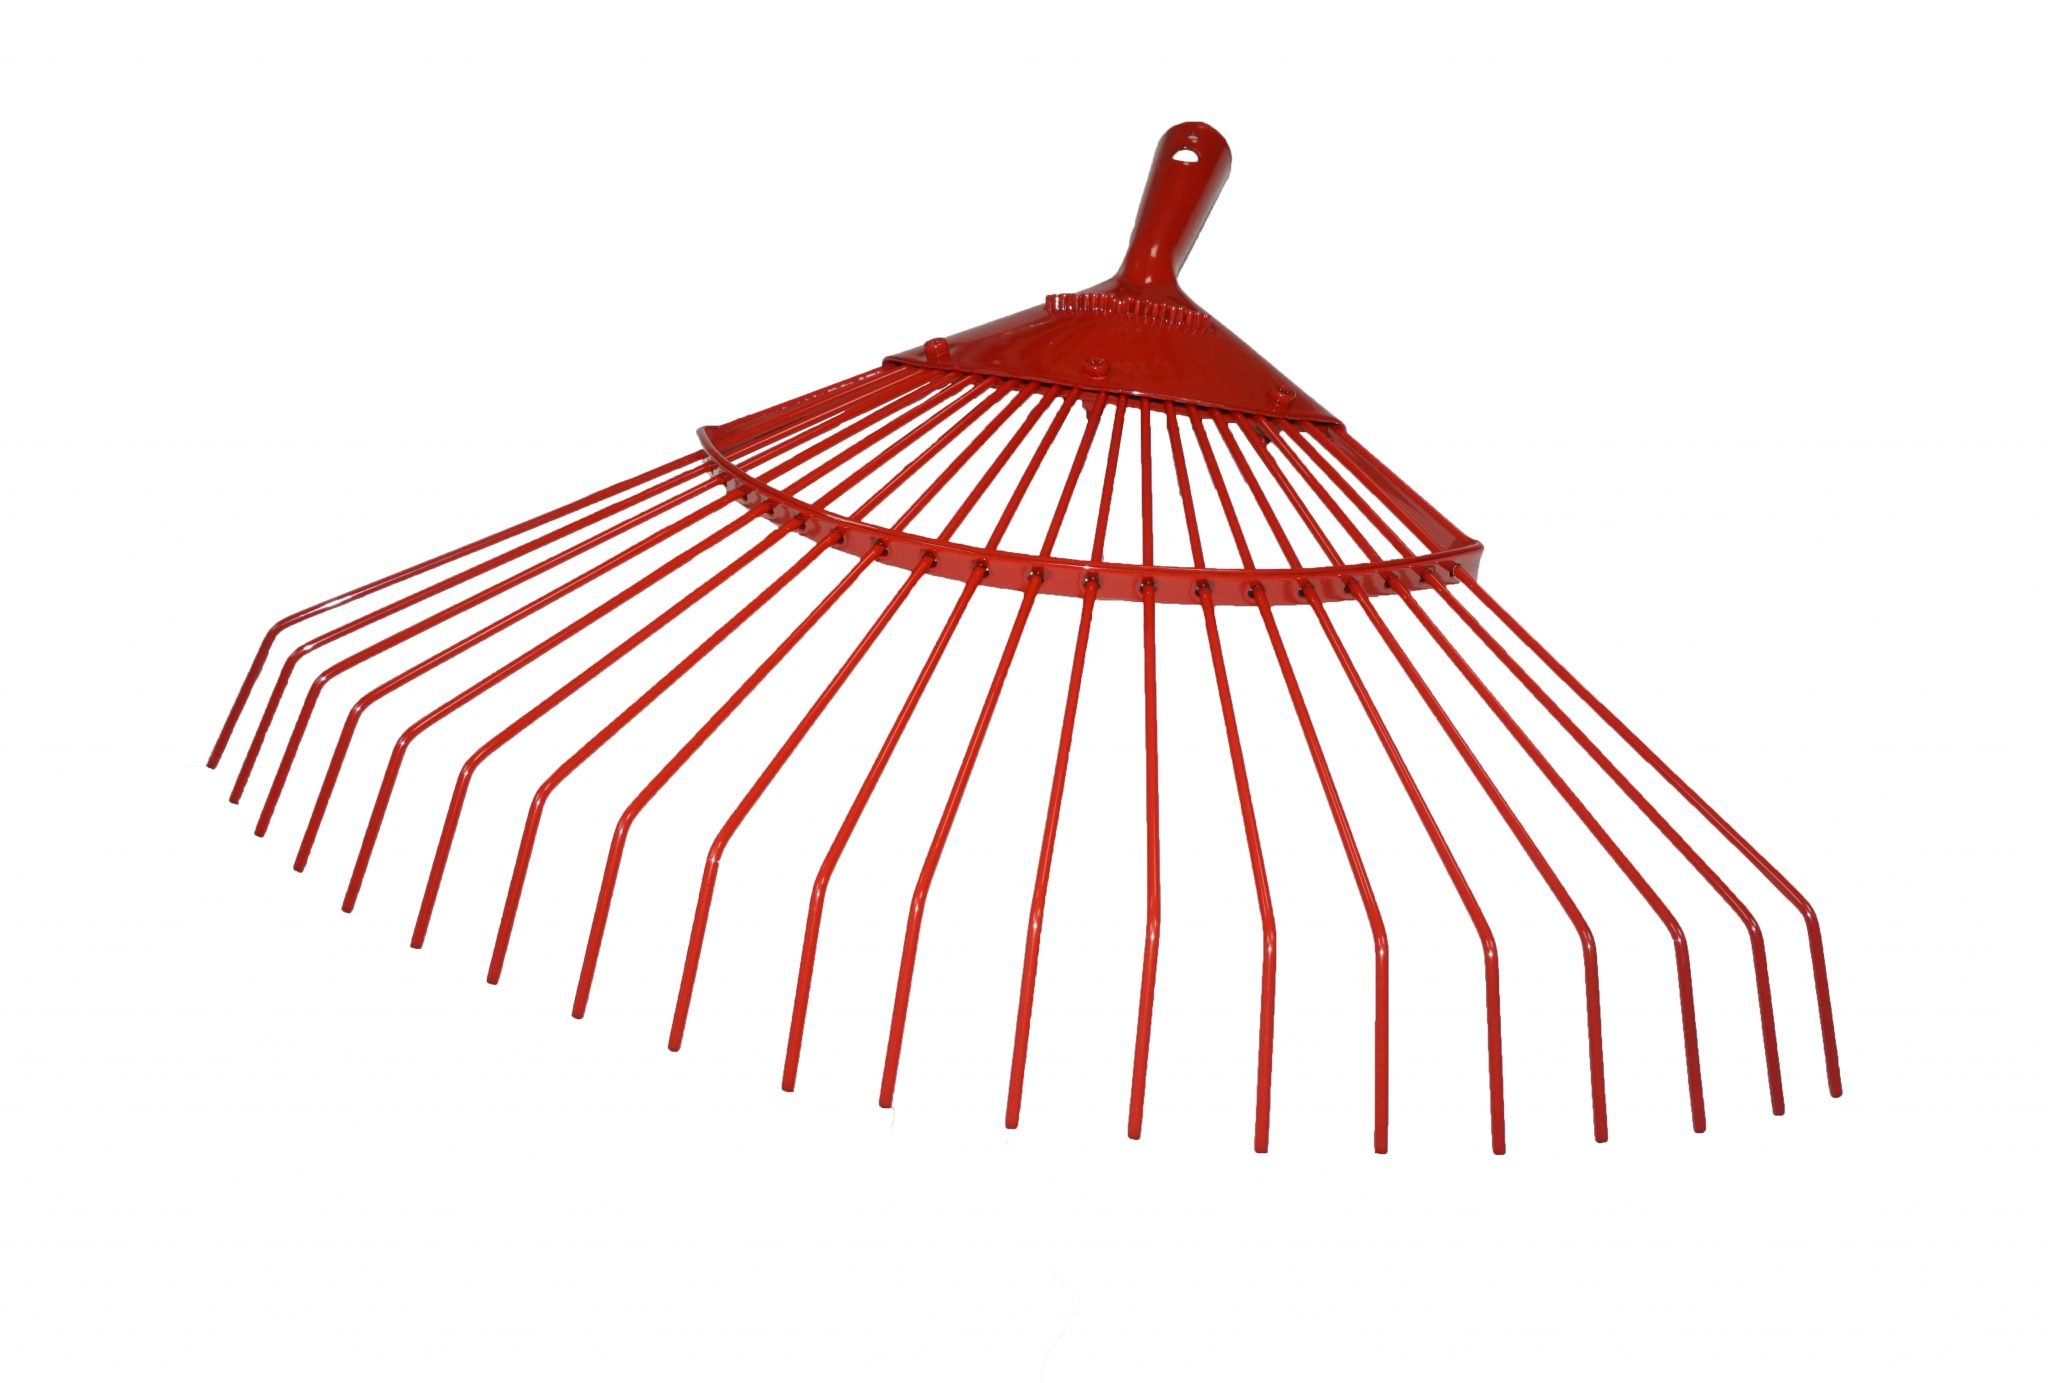 RE2DF-18″X20T WIRE RAKE Image